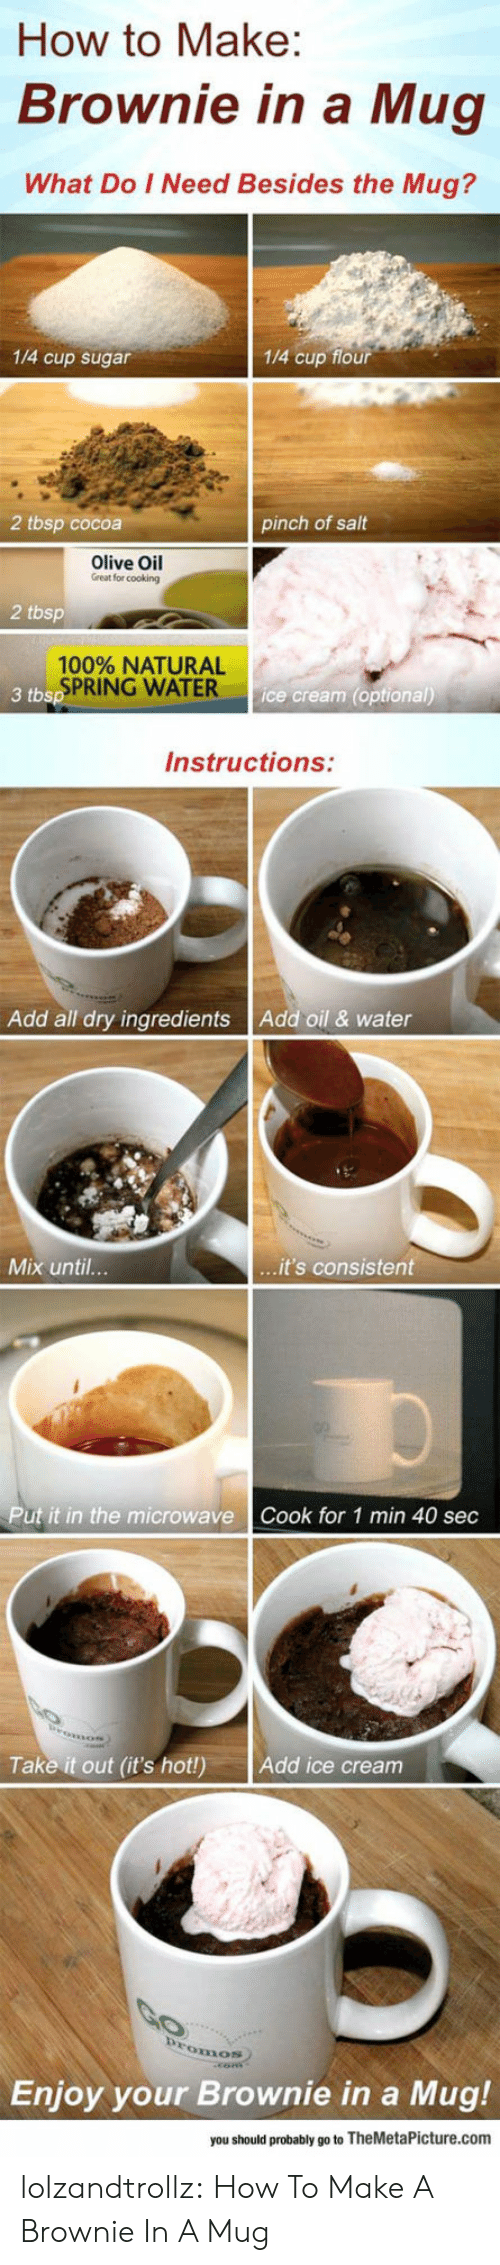 Tumblr, Blog, and How To: How to Make:  Brownie in a Mug  What Do I Need Besides the Mug?  1/4 cup sugar  1/4 cup flour  2 tbsp cocoa  pinch of salt  Olive Oil  Great for cooking  2 tbsp  100% NATURAL  SPRING WATER  3 tbsp  ice cream (optional)  Instructions:  Add oil & water  Add all dry ingredients  ...it's consistent  Mix until...  Put it in the microwave  Cook for 1 min 40 sec  Take it out (it's hot!)  Add ice cream  Promos  Enjoy your Brownie in a  Mug!  you should probably go to TheMetaPicture.com lolzandtrollz:  How To Make A Brownie In A Mug